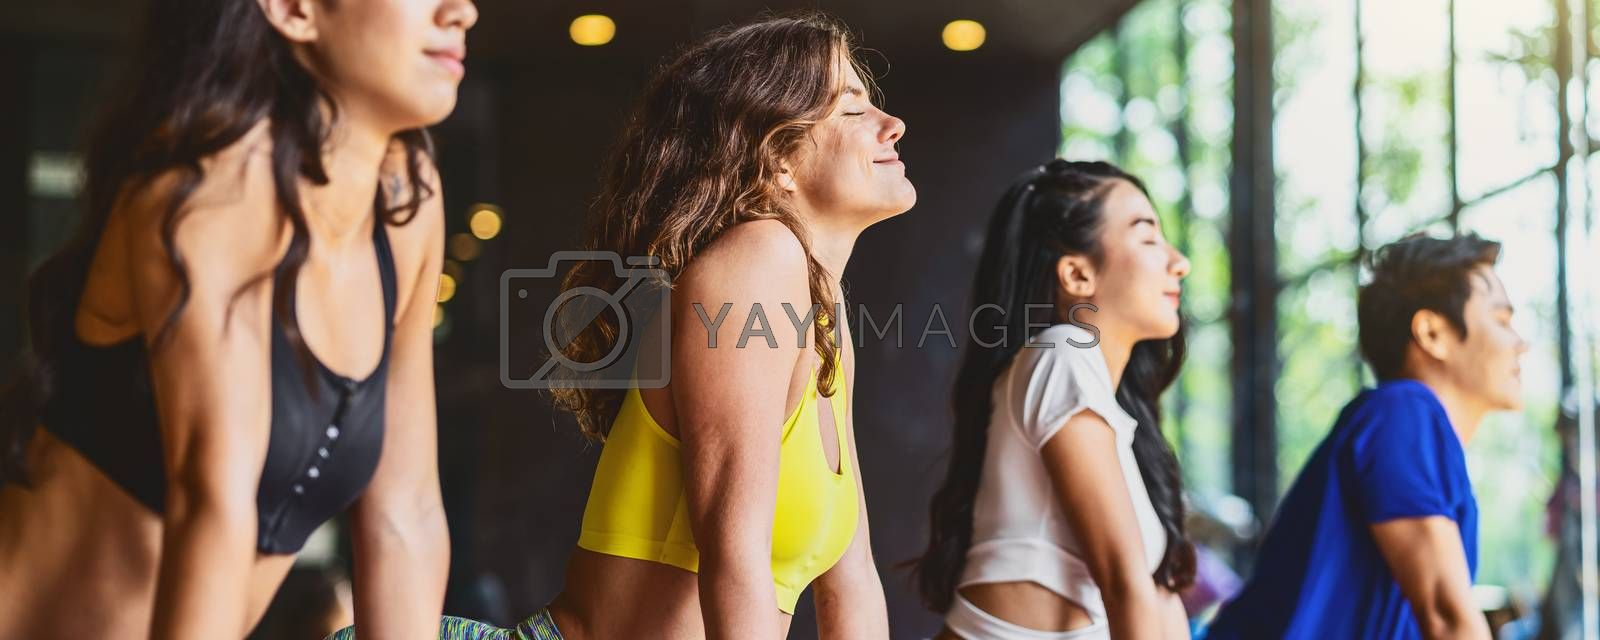 Banner, web page or cover template of Group of diversity practicing yoga class, healthy or Meditation Exercise,stretching in upward facing dog exercise, sports and healthcare concept